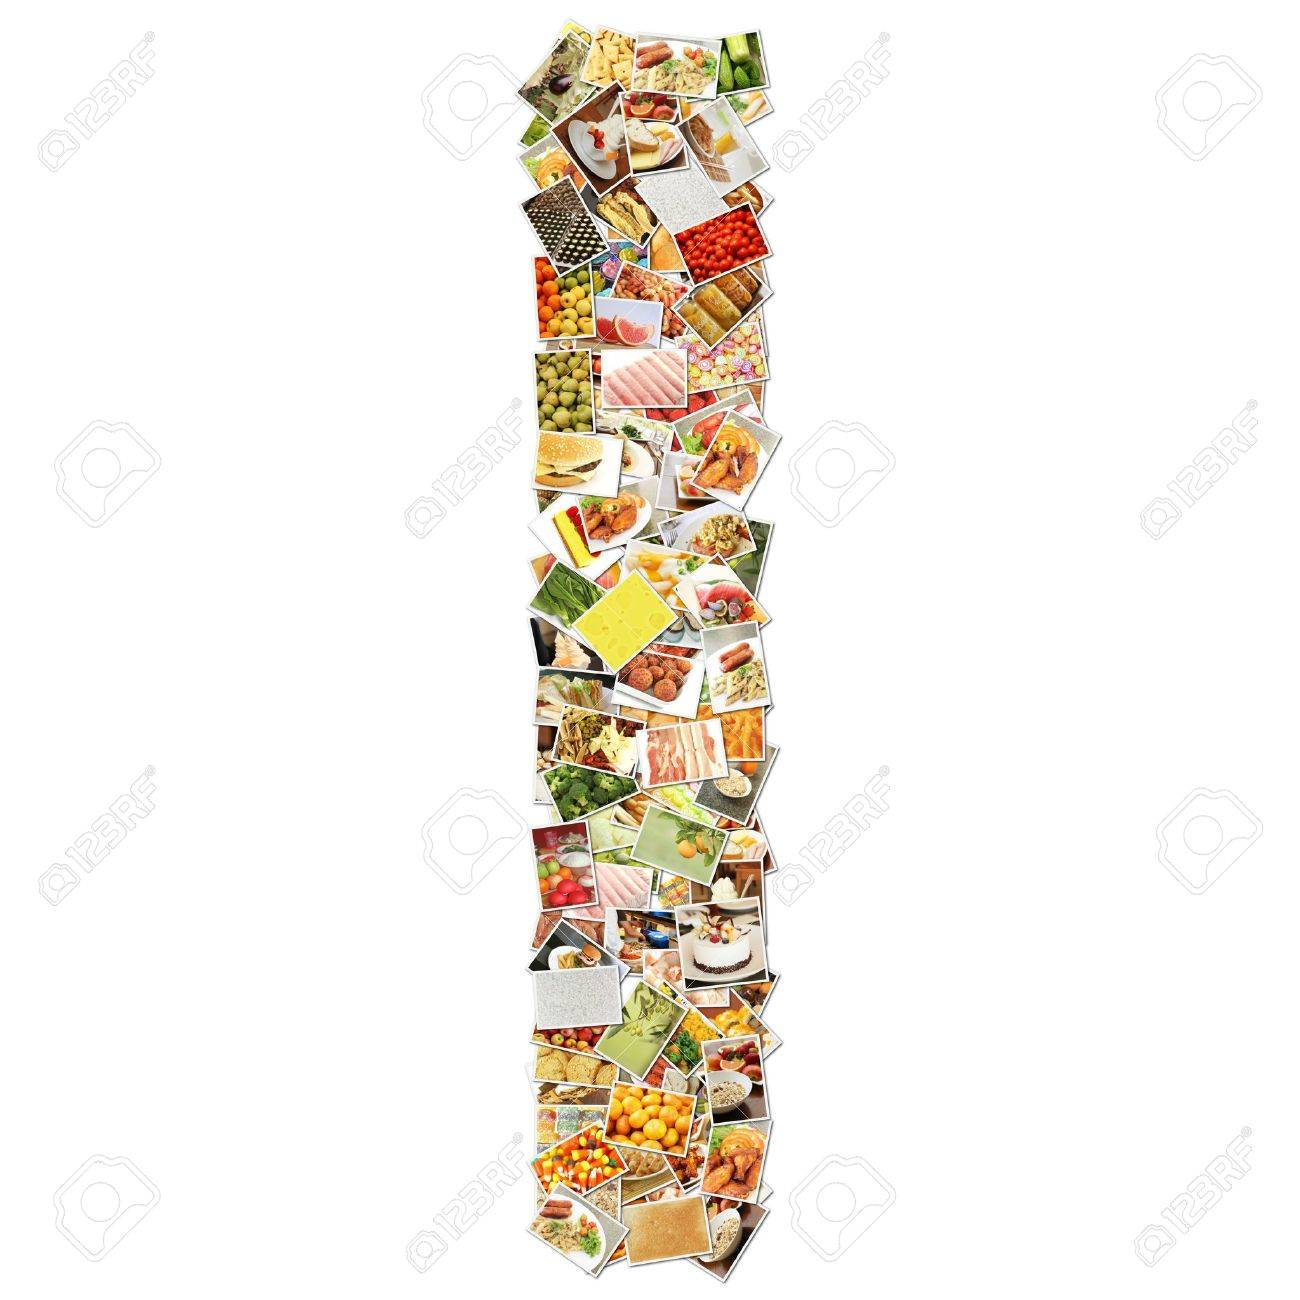 letter i food collage concept art stock photo picture and letter i food collage concept art stock photo 9691825